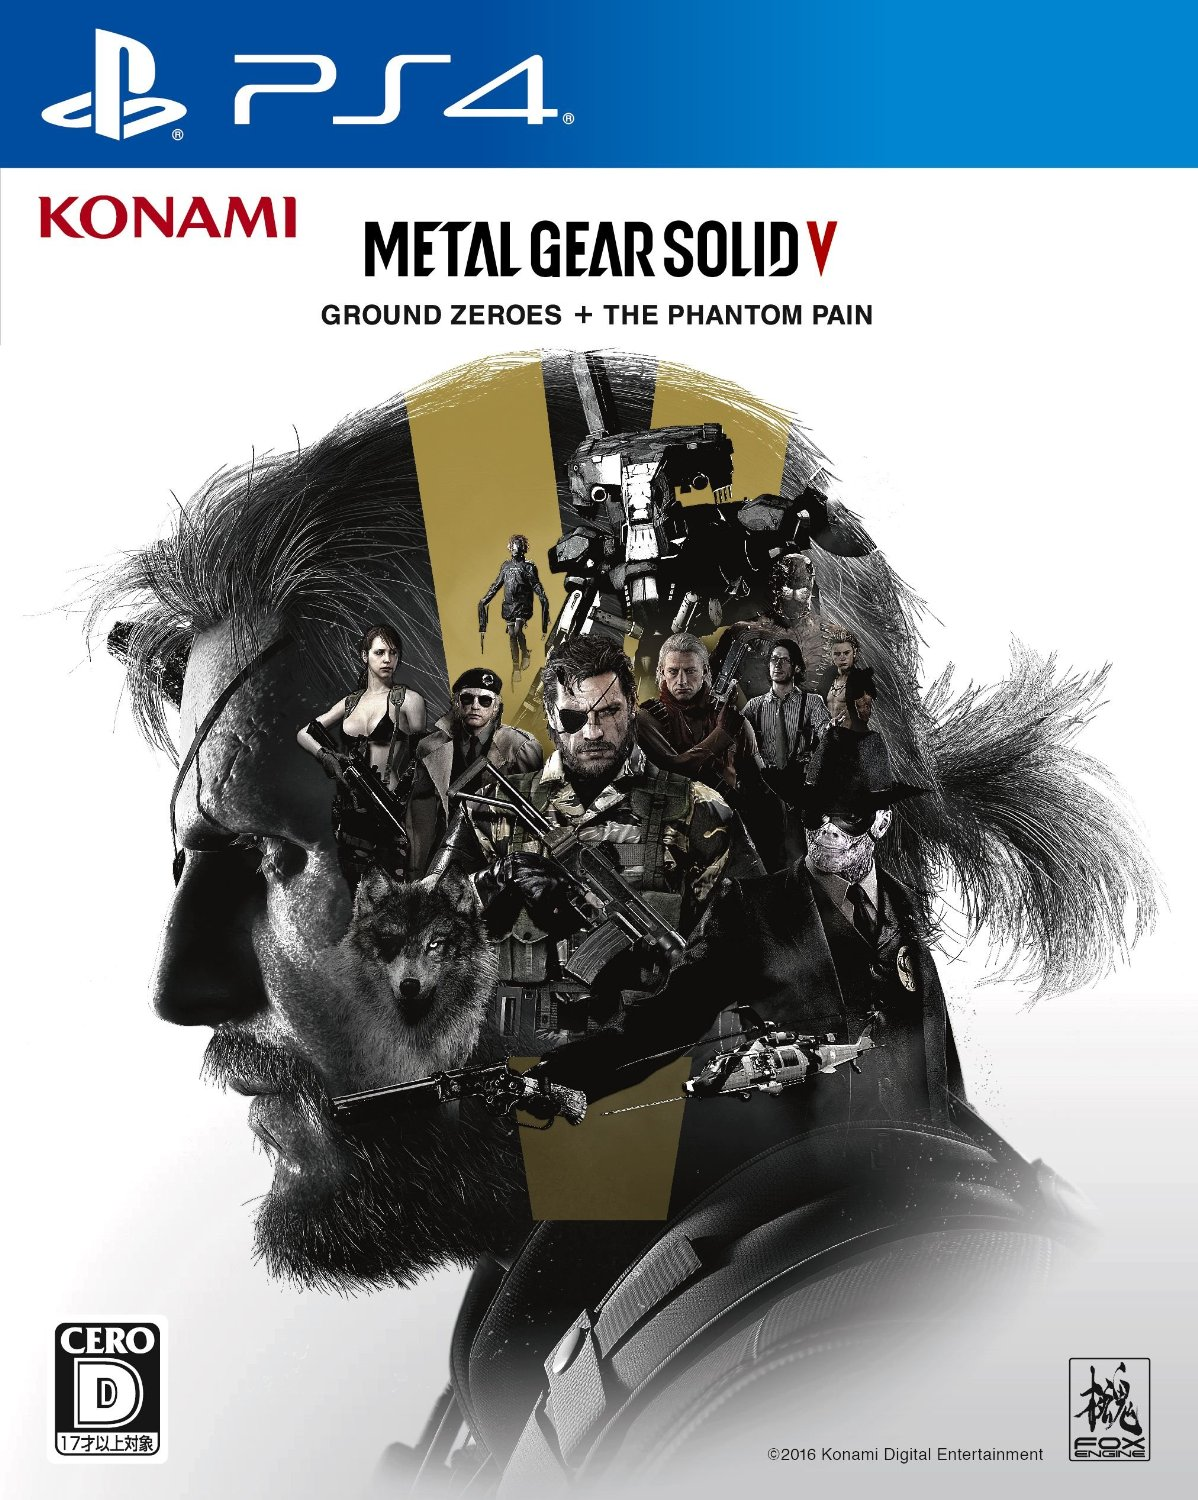 Mgsv ground zeros and phantom pain